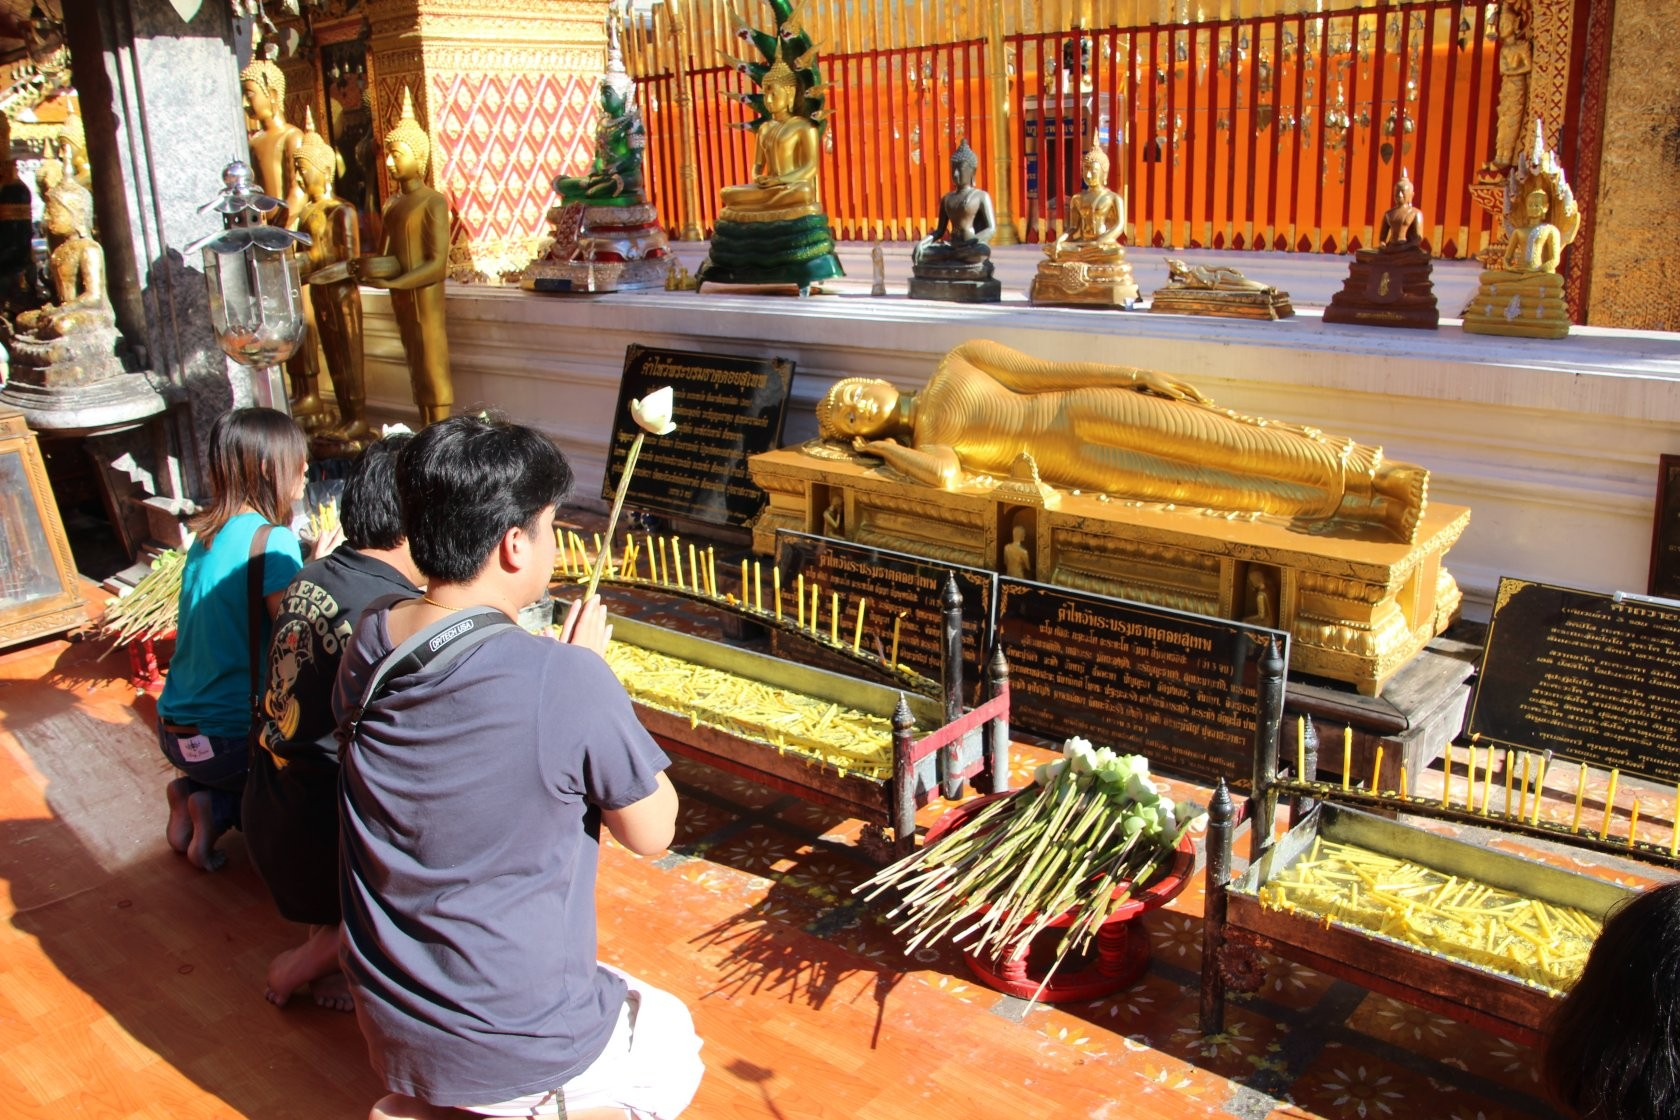 Chiang Mai - Rundgang durch die Stadt LIX (Wat Phra That Doi Suthep)